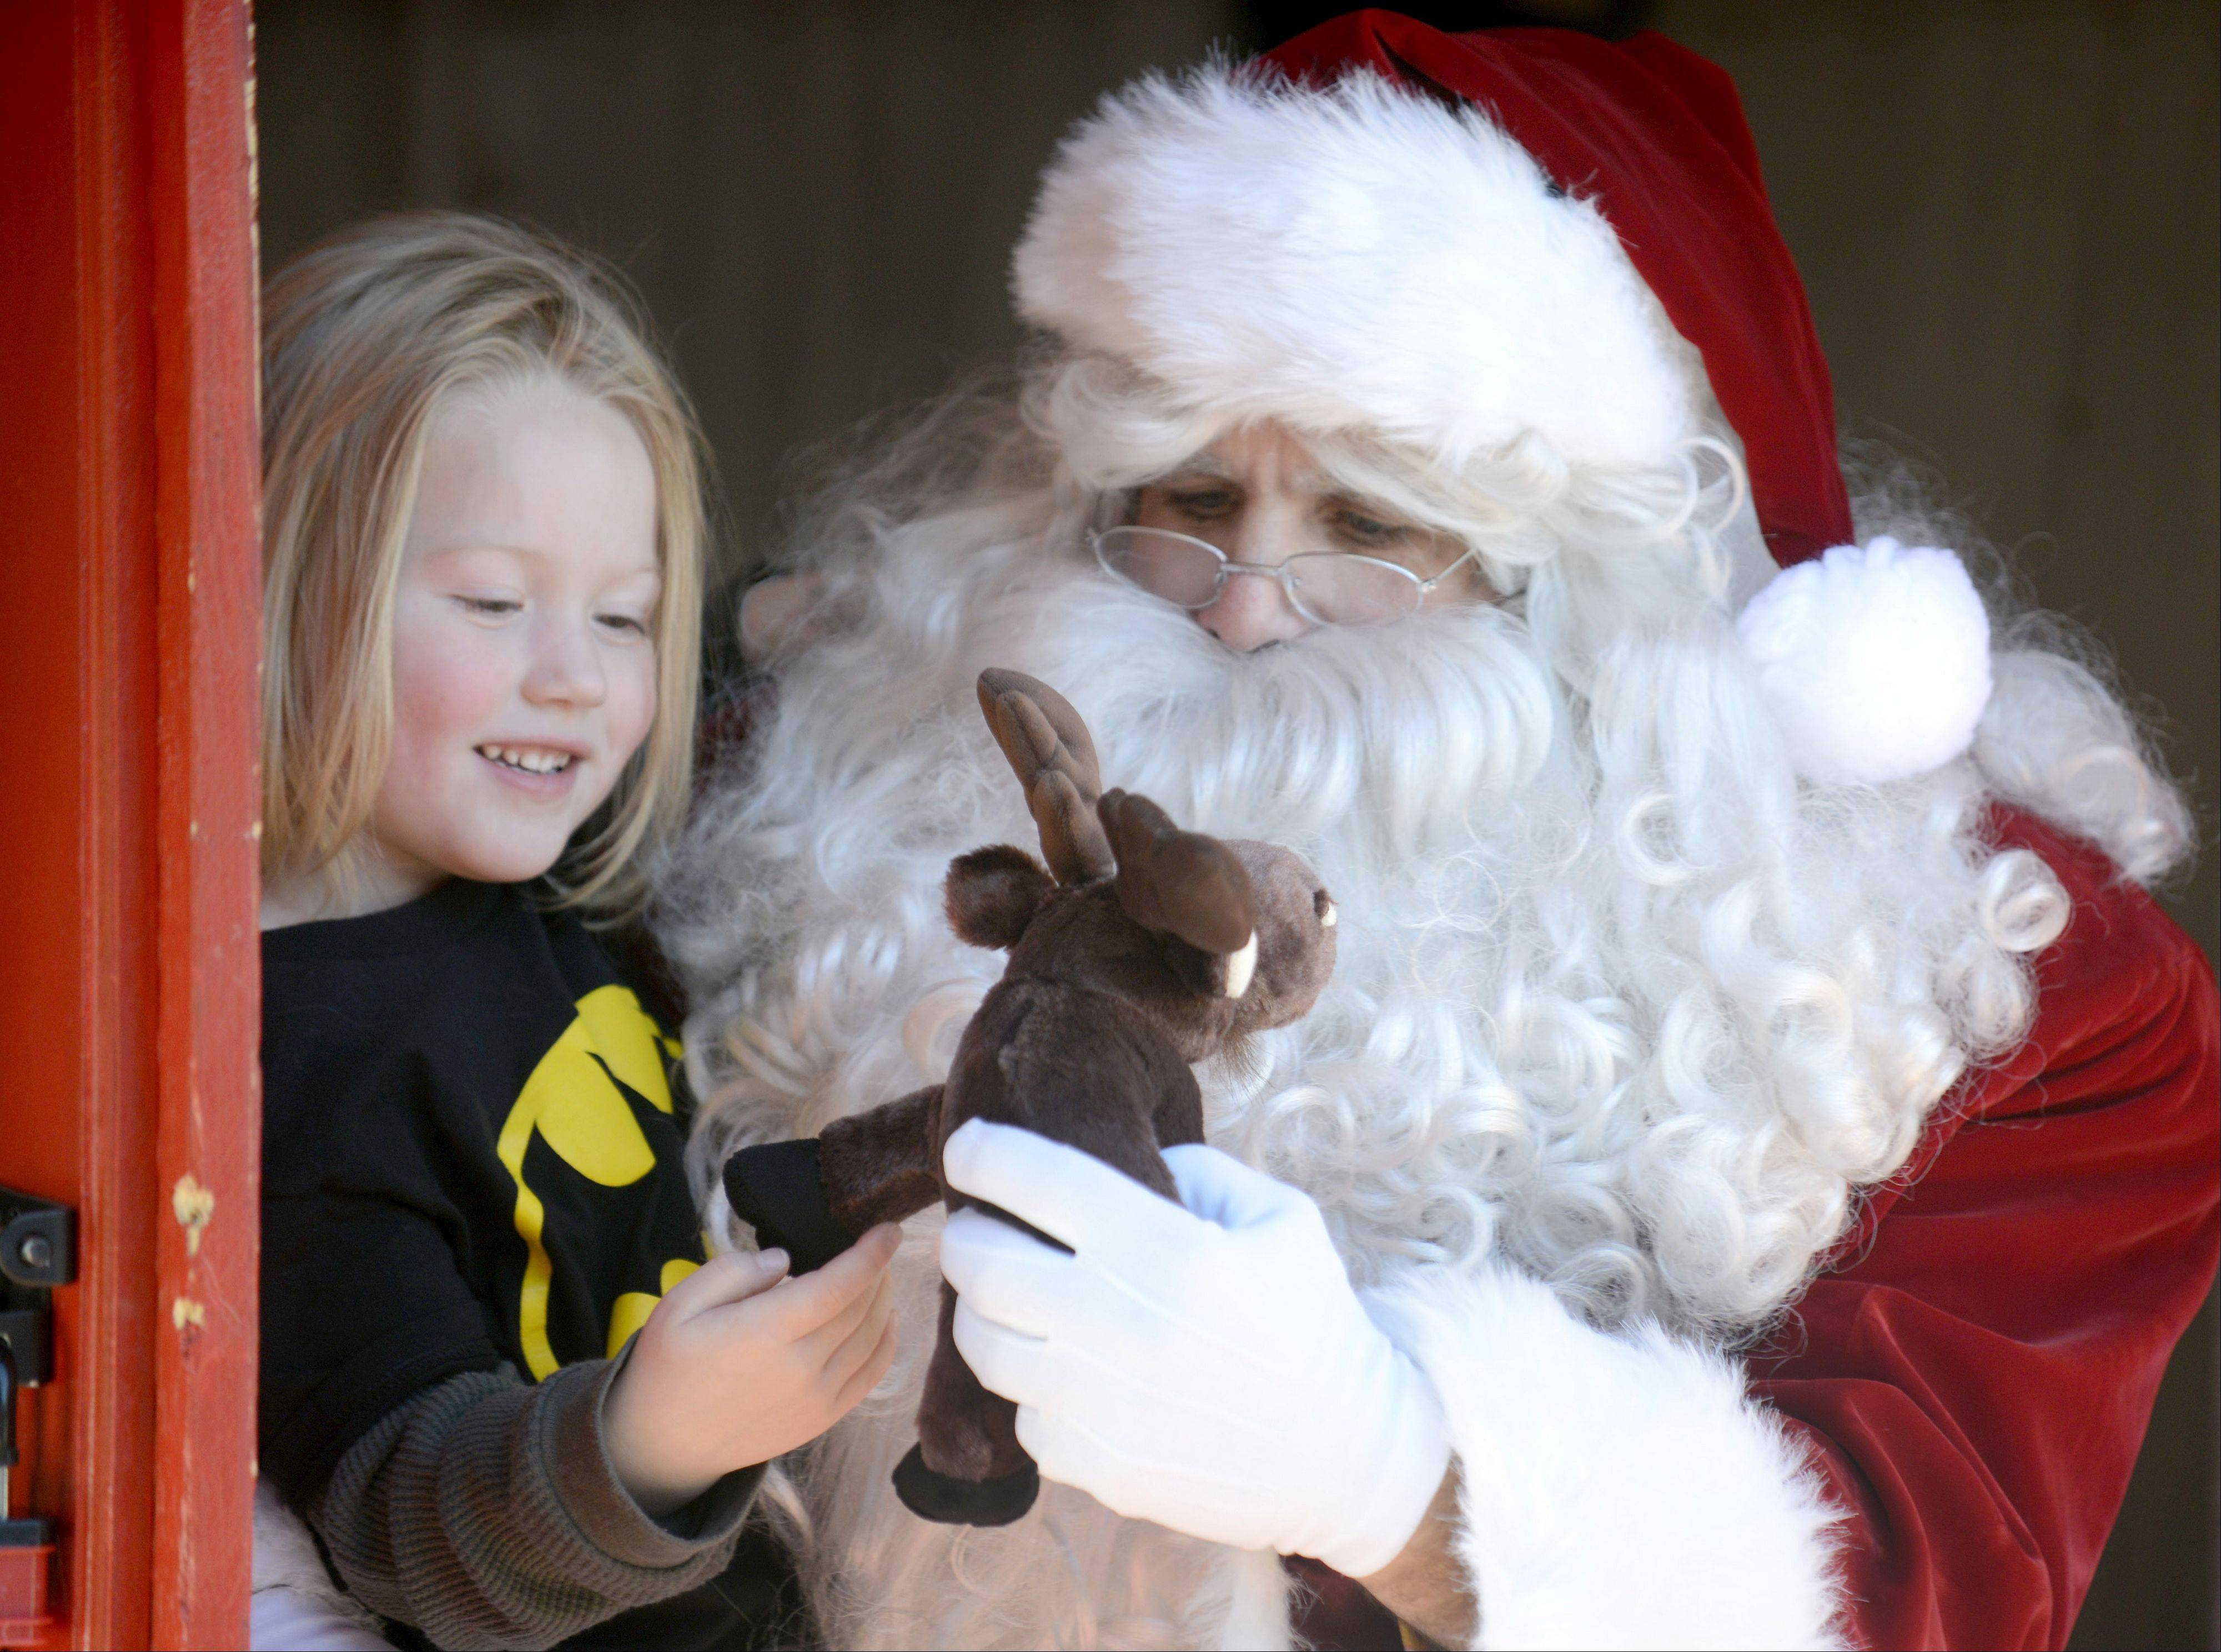 Maggy Kostiwa, 4, of Milwaukee asks Santa for a Batman cape for her moose (to match her shirt) while visiting him Saturday in the First Street Plaza during the St. Charles Holiday Homecoming festivities. Maggy�s father, Wade, grew up in St. Charles and was visiting relatives and friends over Thanksgiving. Santa was portrayed by Bill Watson of Lisle. His wife, Shannon, the executive director of the Tri City Health Partnership, was Mrs. Claus.